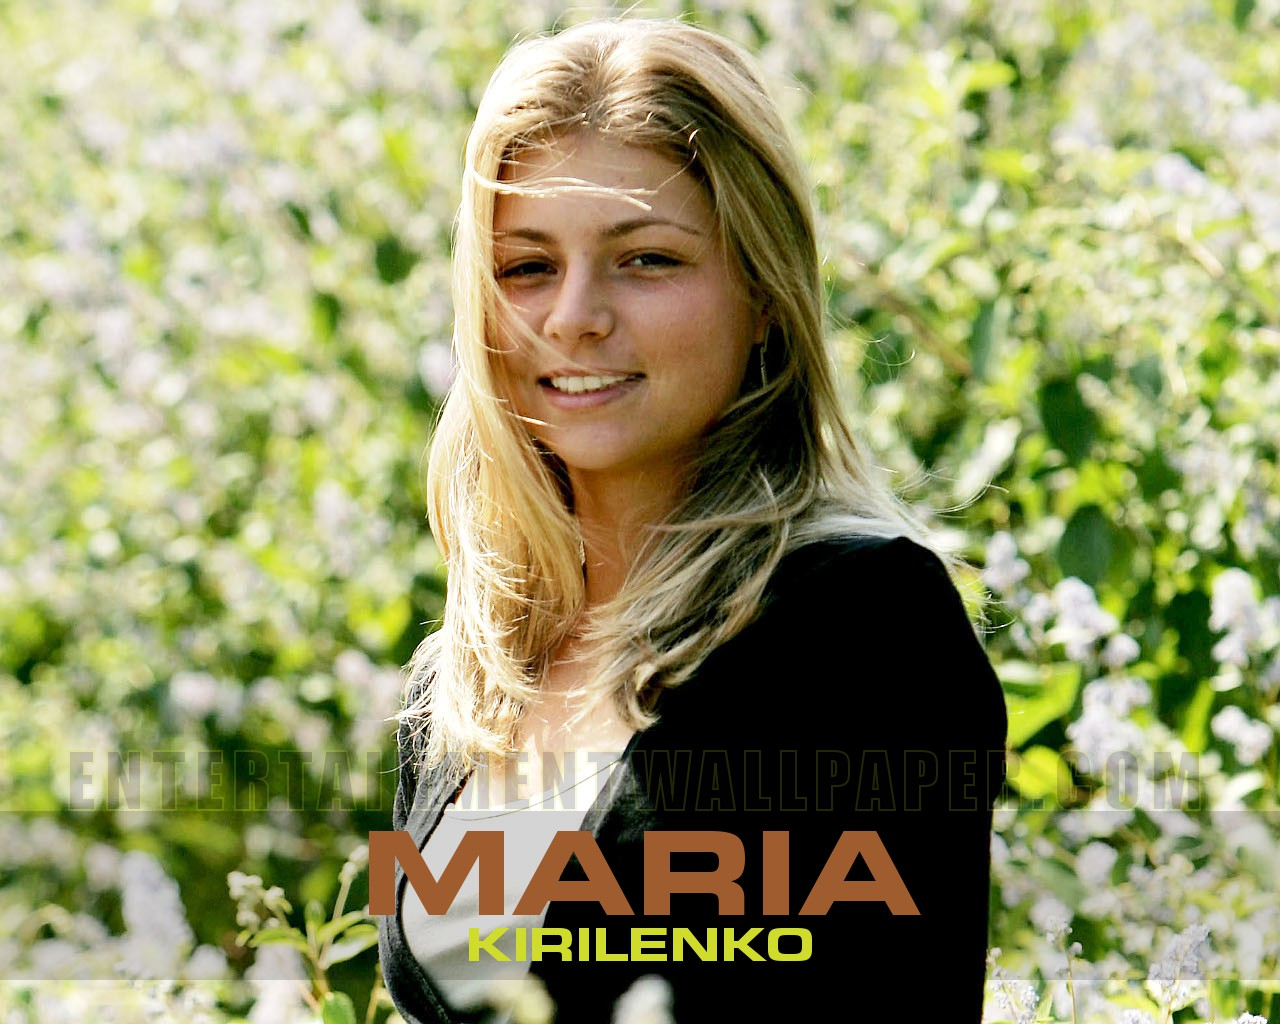 Maria Kirilenko Wallpaper - Original size, download now.